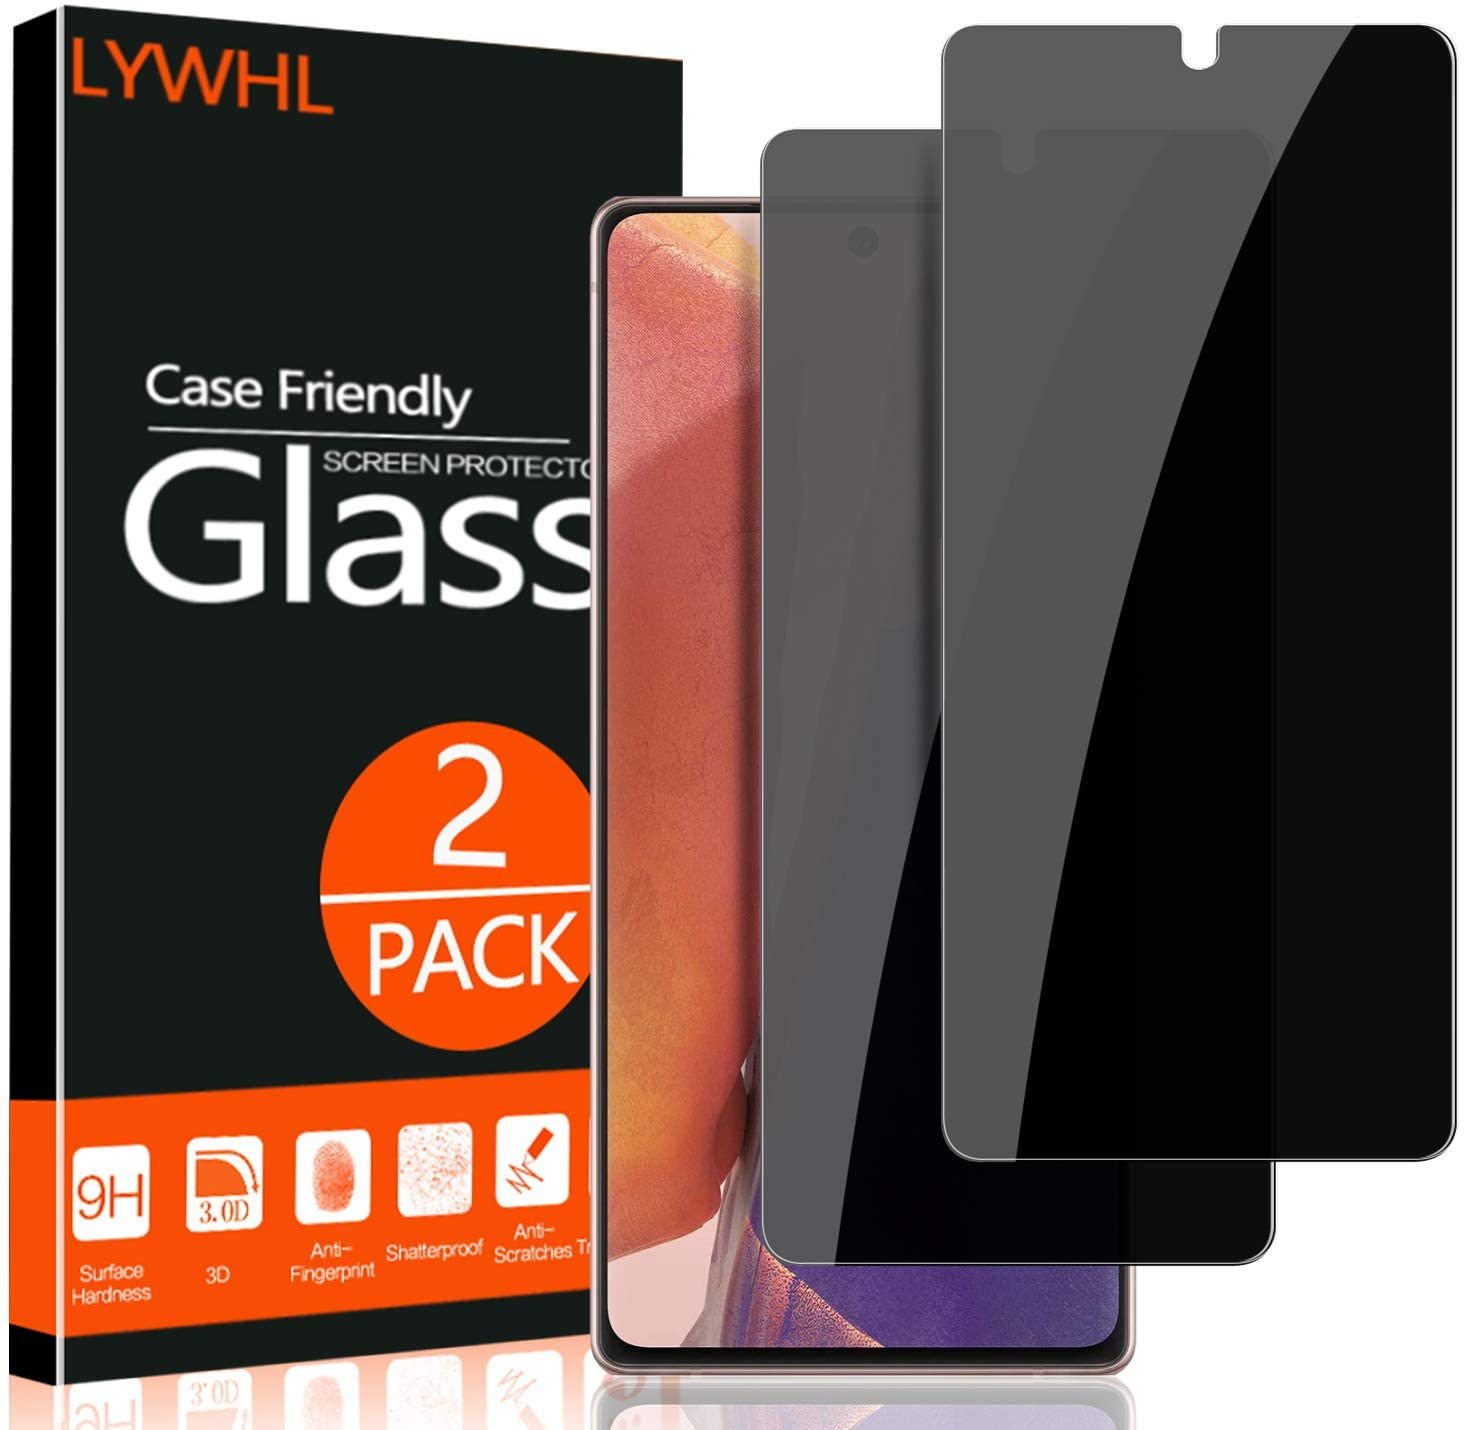 for Samsung Galaxy Note 20 Screen Protector, Galaxy Note 20 Privacy Screen Protector, Anti Spy Anti Peeping Anti Scratch HD Tempered Glass Protective Glass Film Screen Protector for Samsung Galaxy Note 20, Case Friendly, Easy Install (2 Pack - Black)